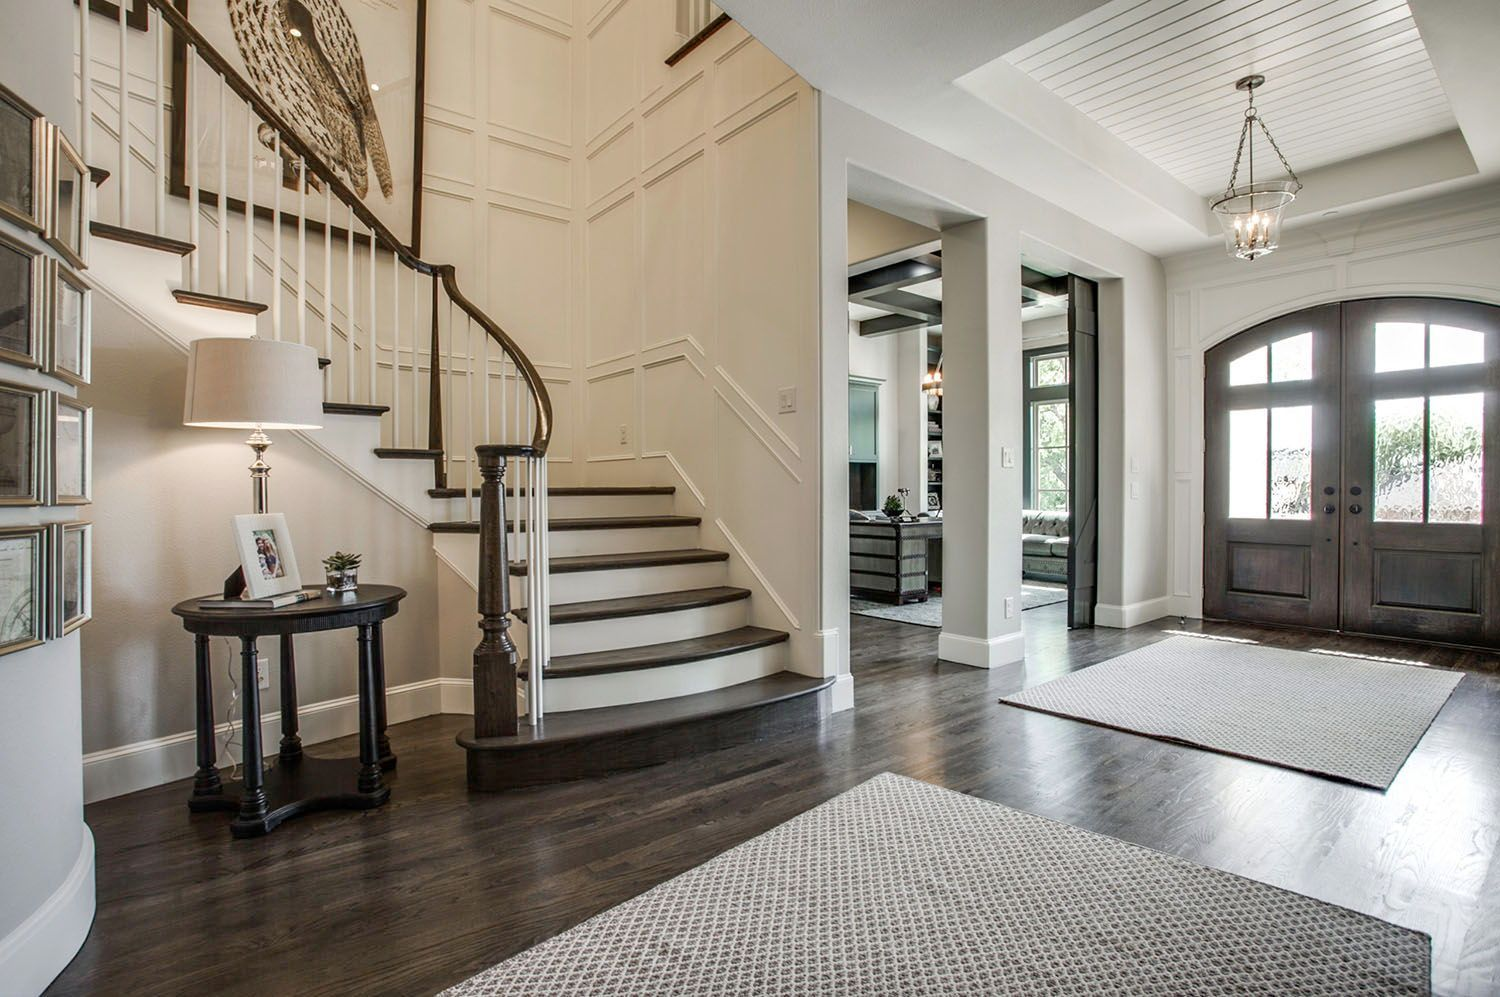 Stunning Cape Cod Design In Texas With Sophisticated Interior Styling In 2021 Foyer Decorating Foyer Staircase Foyer Ideas Entryway